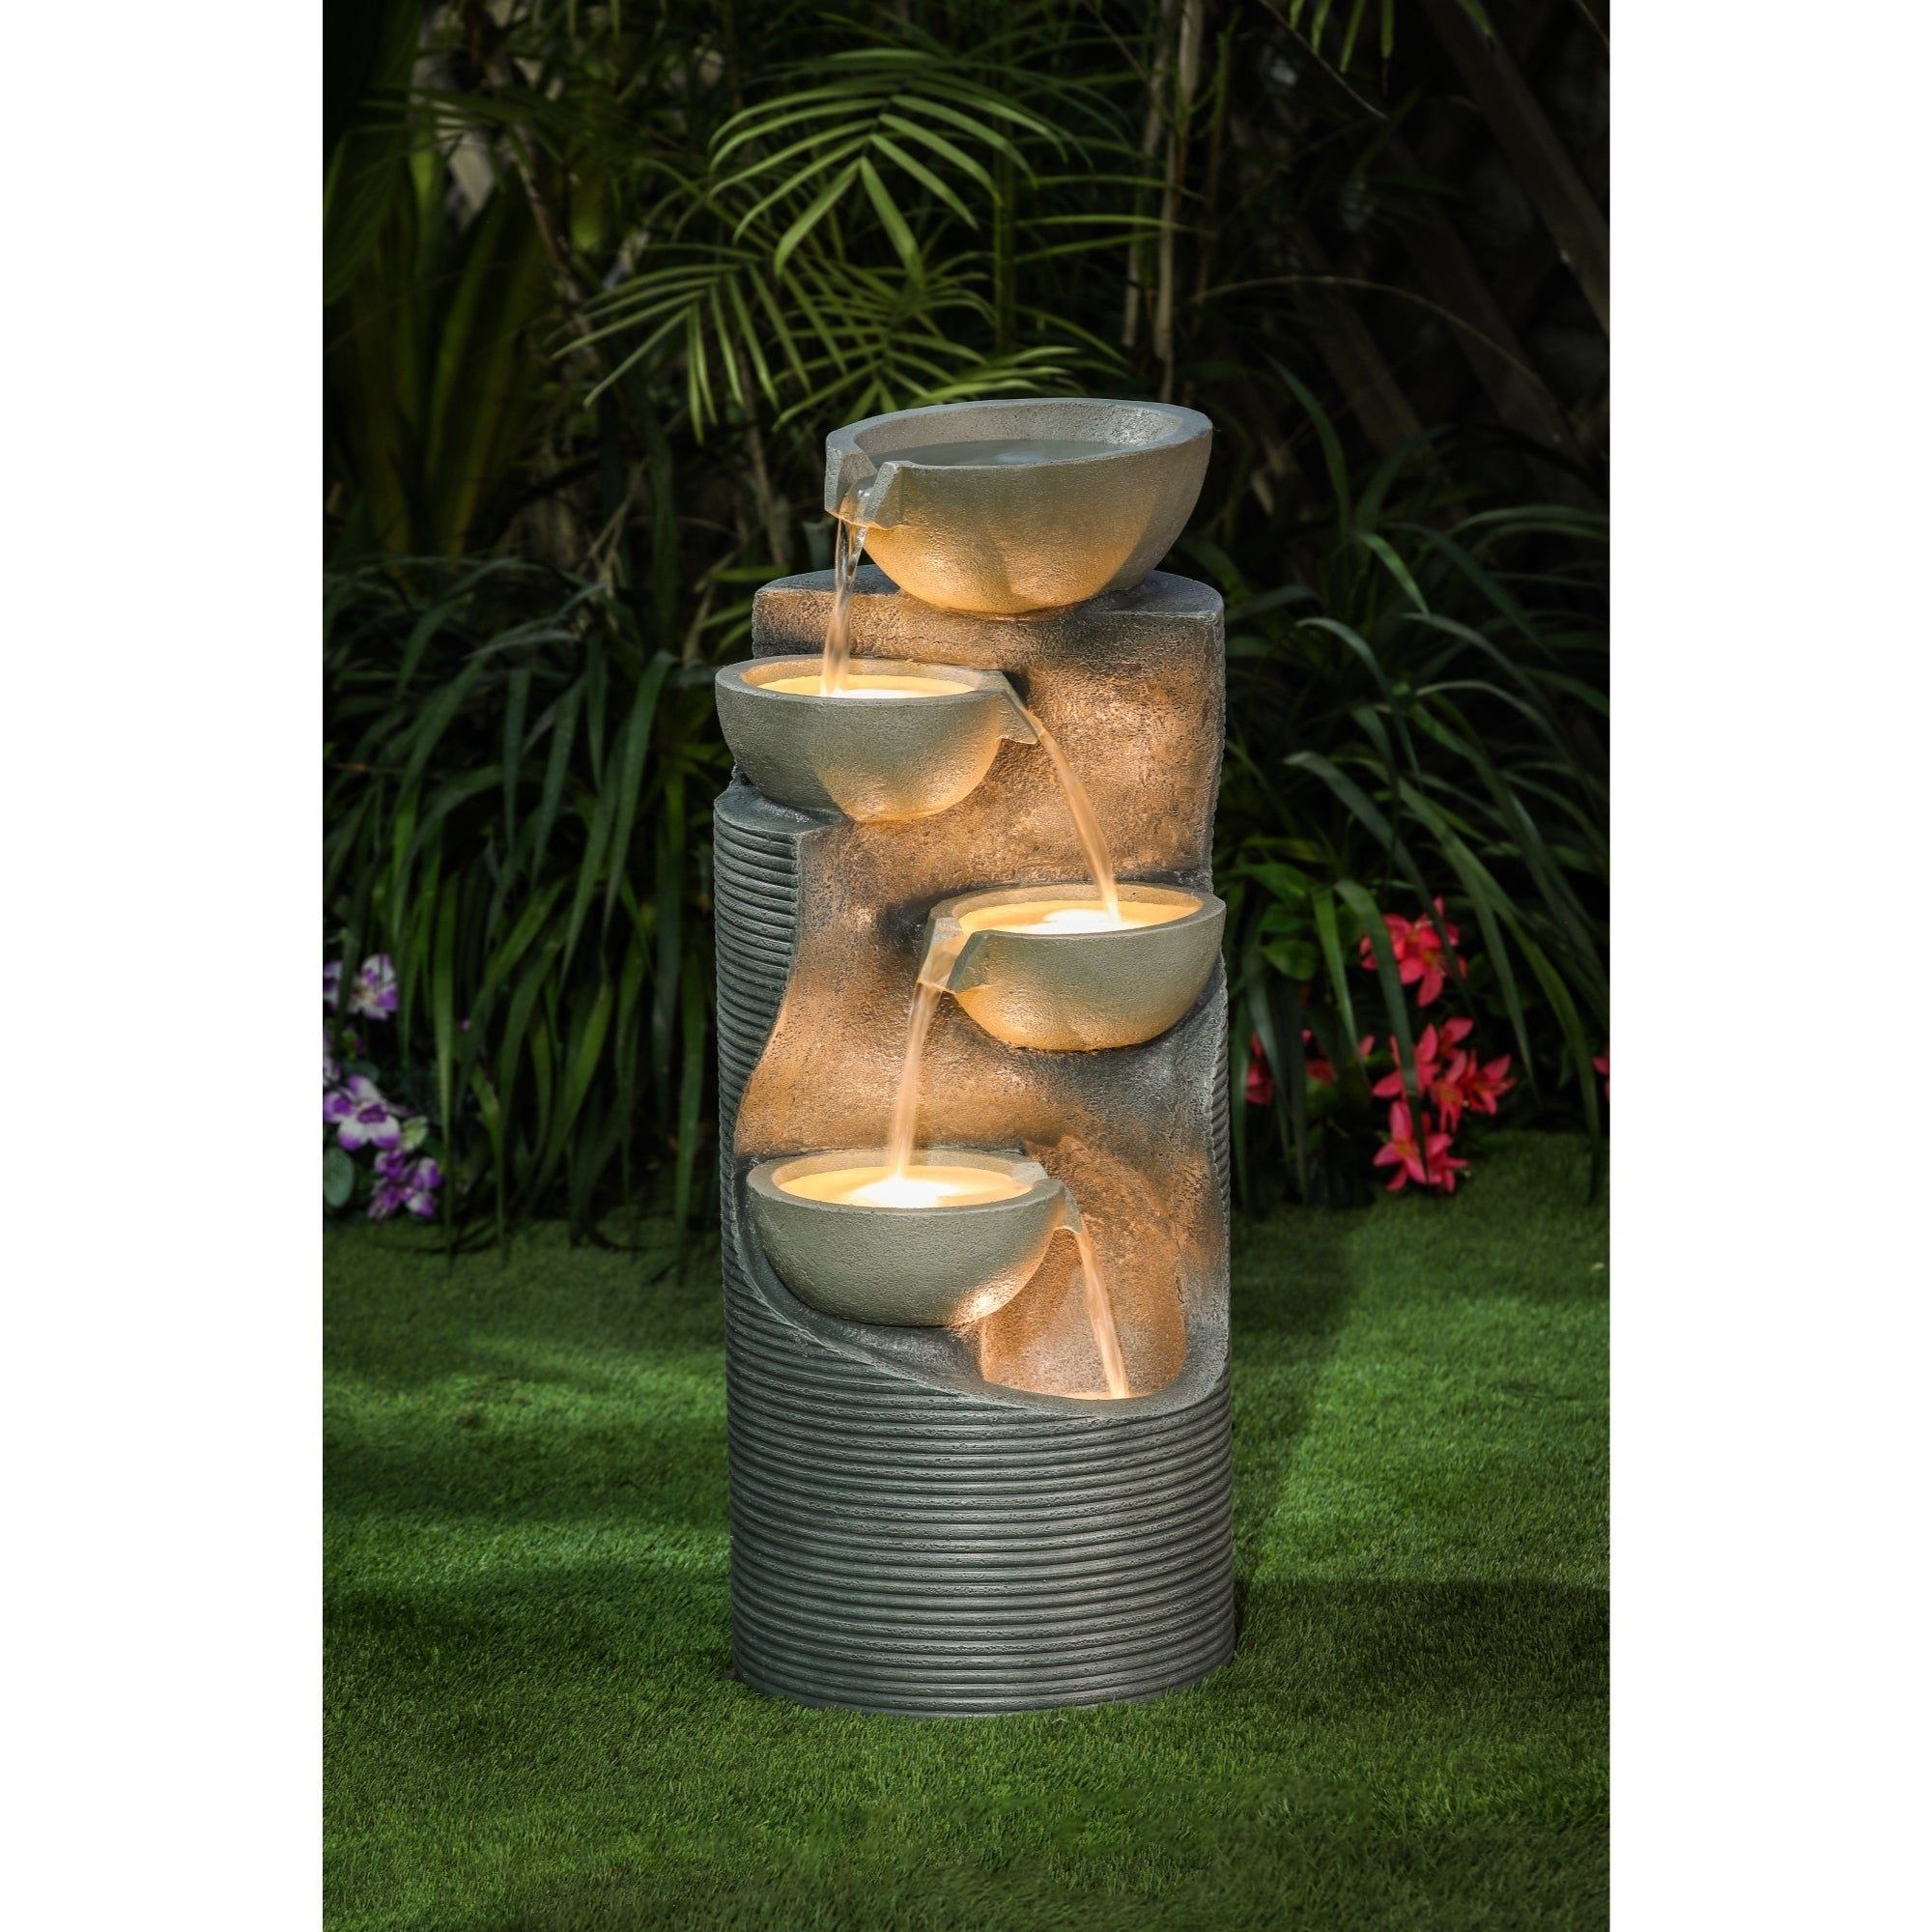 Resin Modern Tiered Bowls Outdoor Patio Fountain With Led Light Overstock 28964676